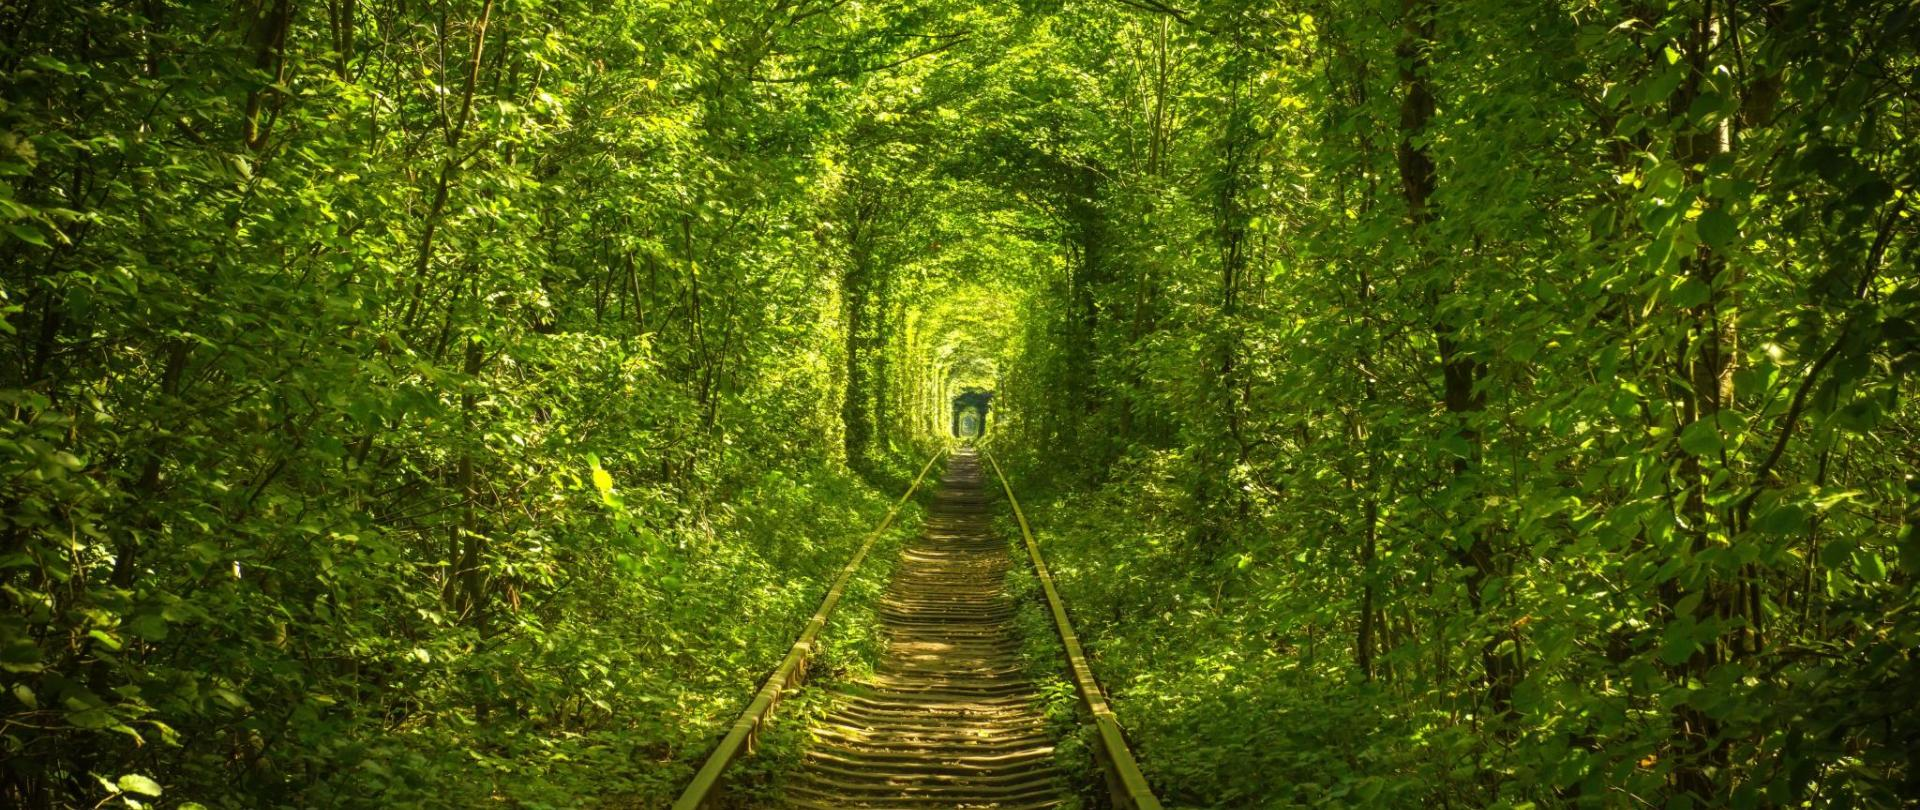 Hotel Tunnel of Love